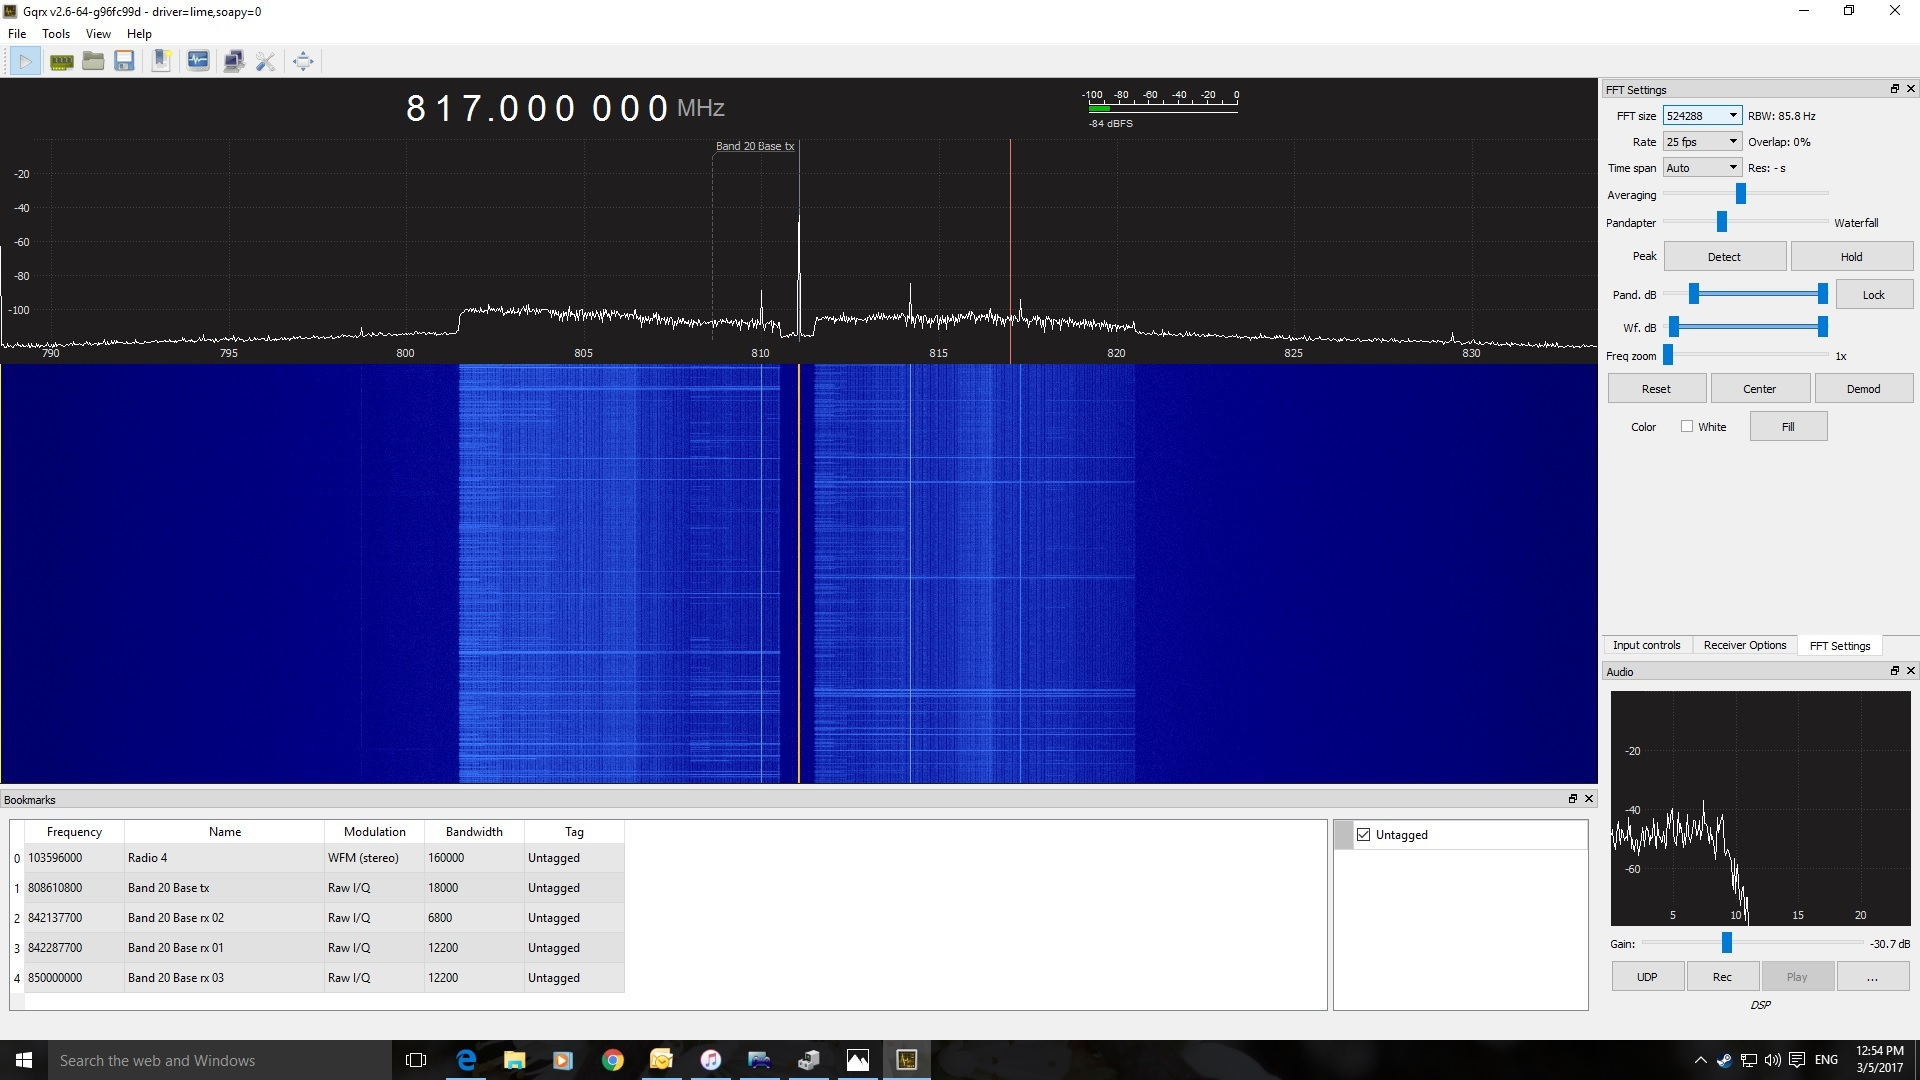 Band 20 LTE sniffing - LimeSDR - Myriad RF Discourse